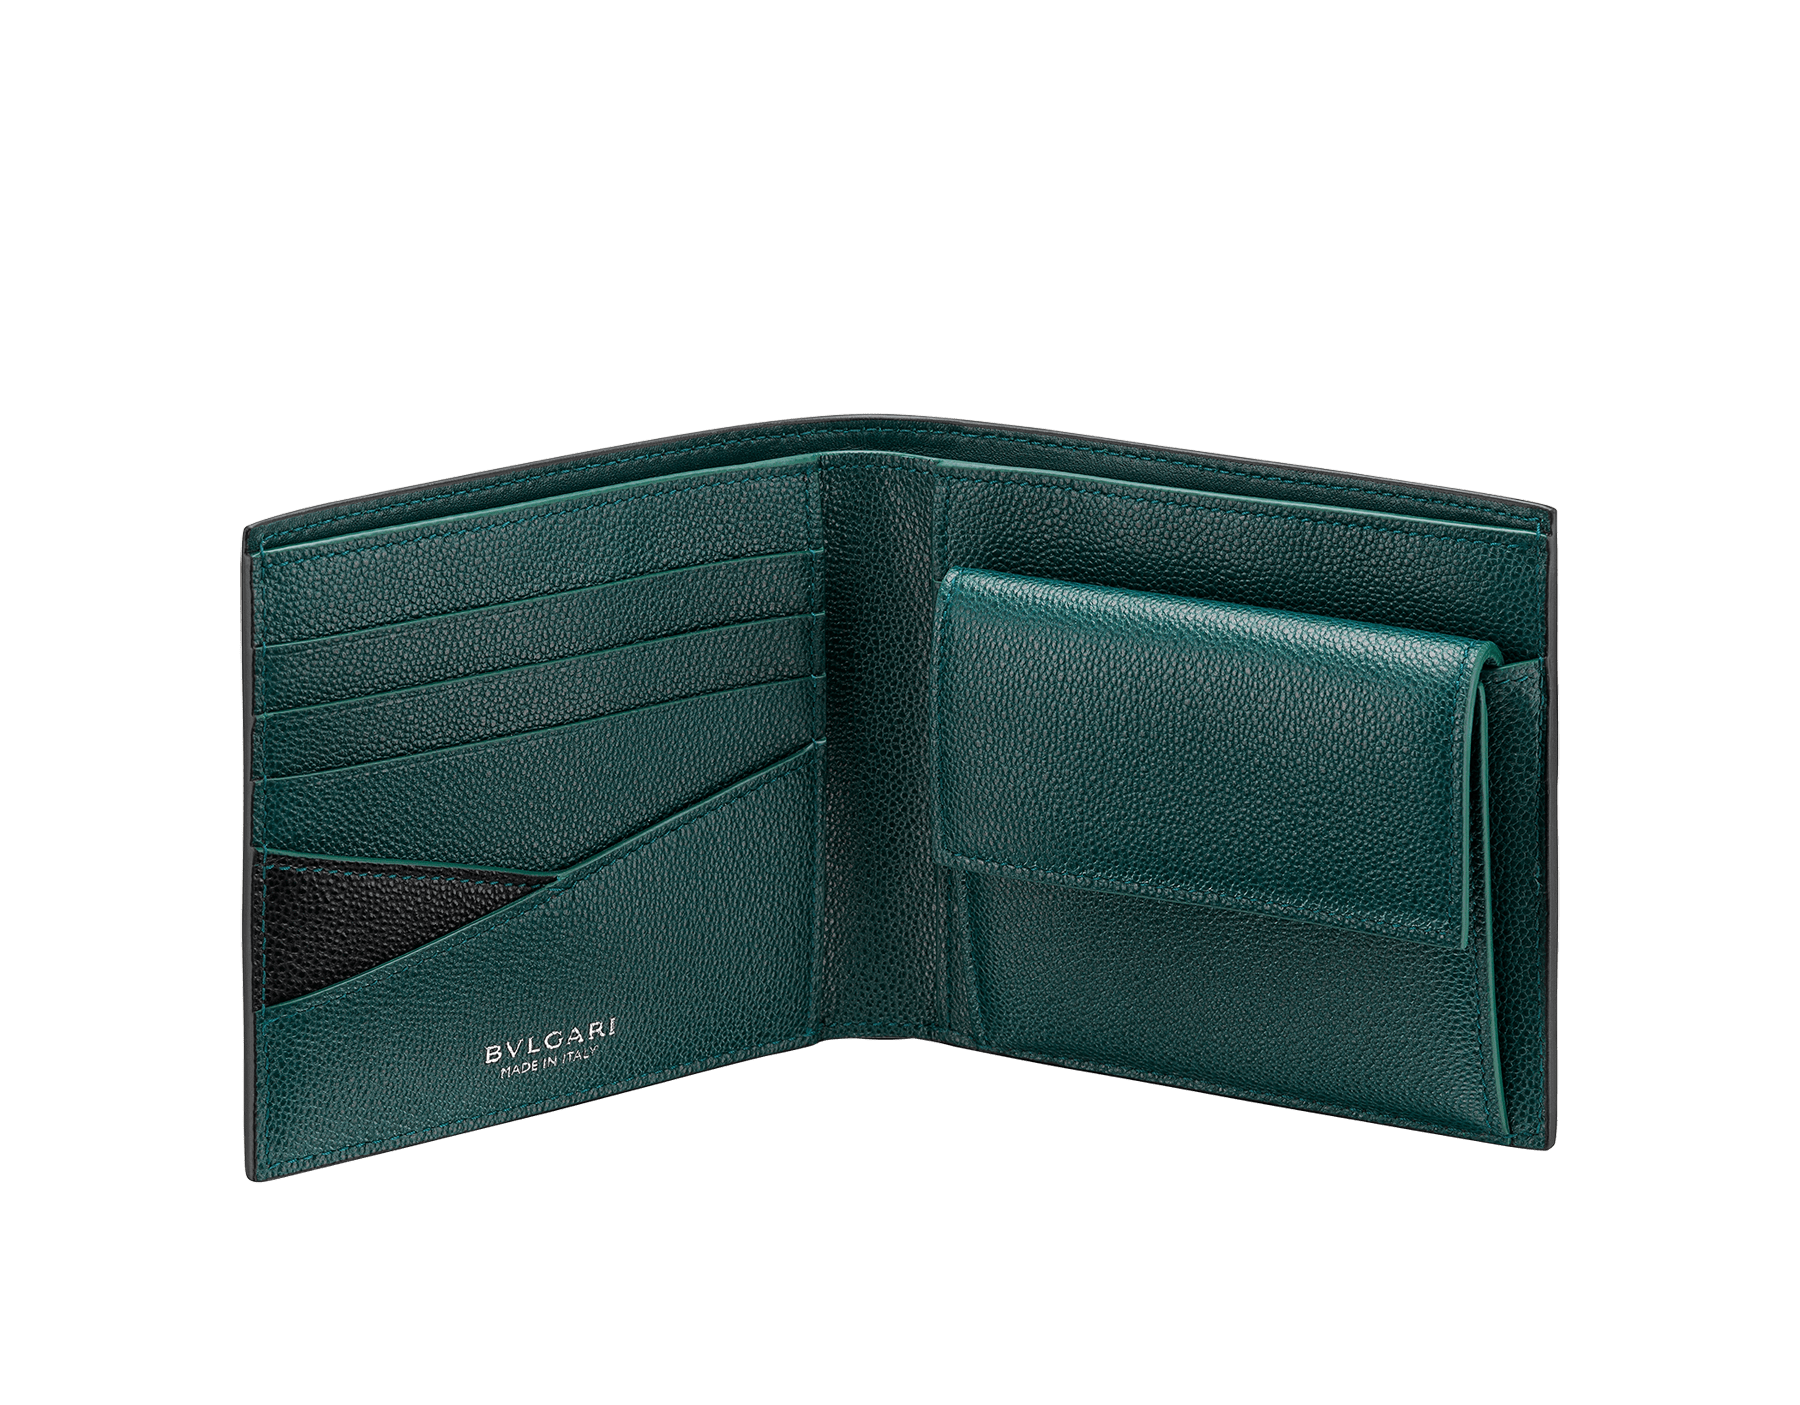 """""""BVLGARI BVLGARI"""" men's compact wallet in black and Forest Emerald green """"Urban"""" grain calf leather. Iconic logo embellishment in dark ruthenium-plated brass with black enameling. BBM-WLTITALASYM image 3"""